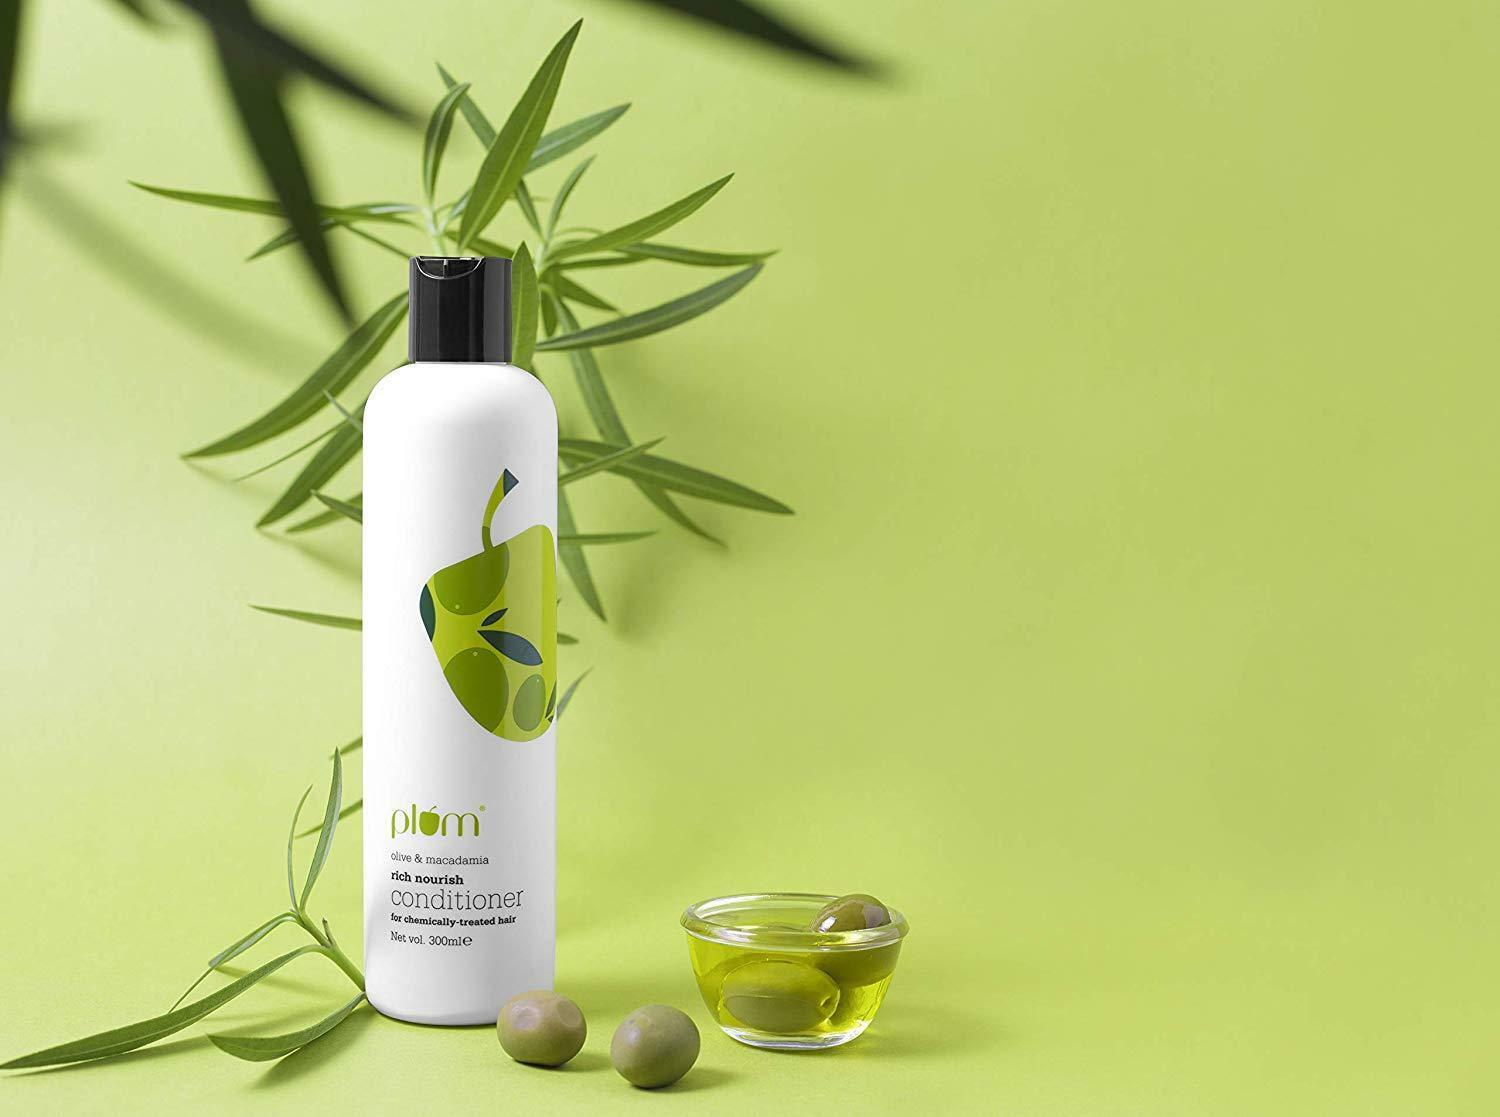 Plum Olive & Macadamia Rich Nourish Conditioner, Green, 300 ml (free shipping) image 2